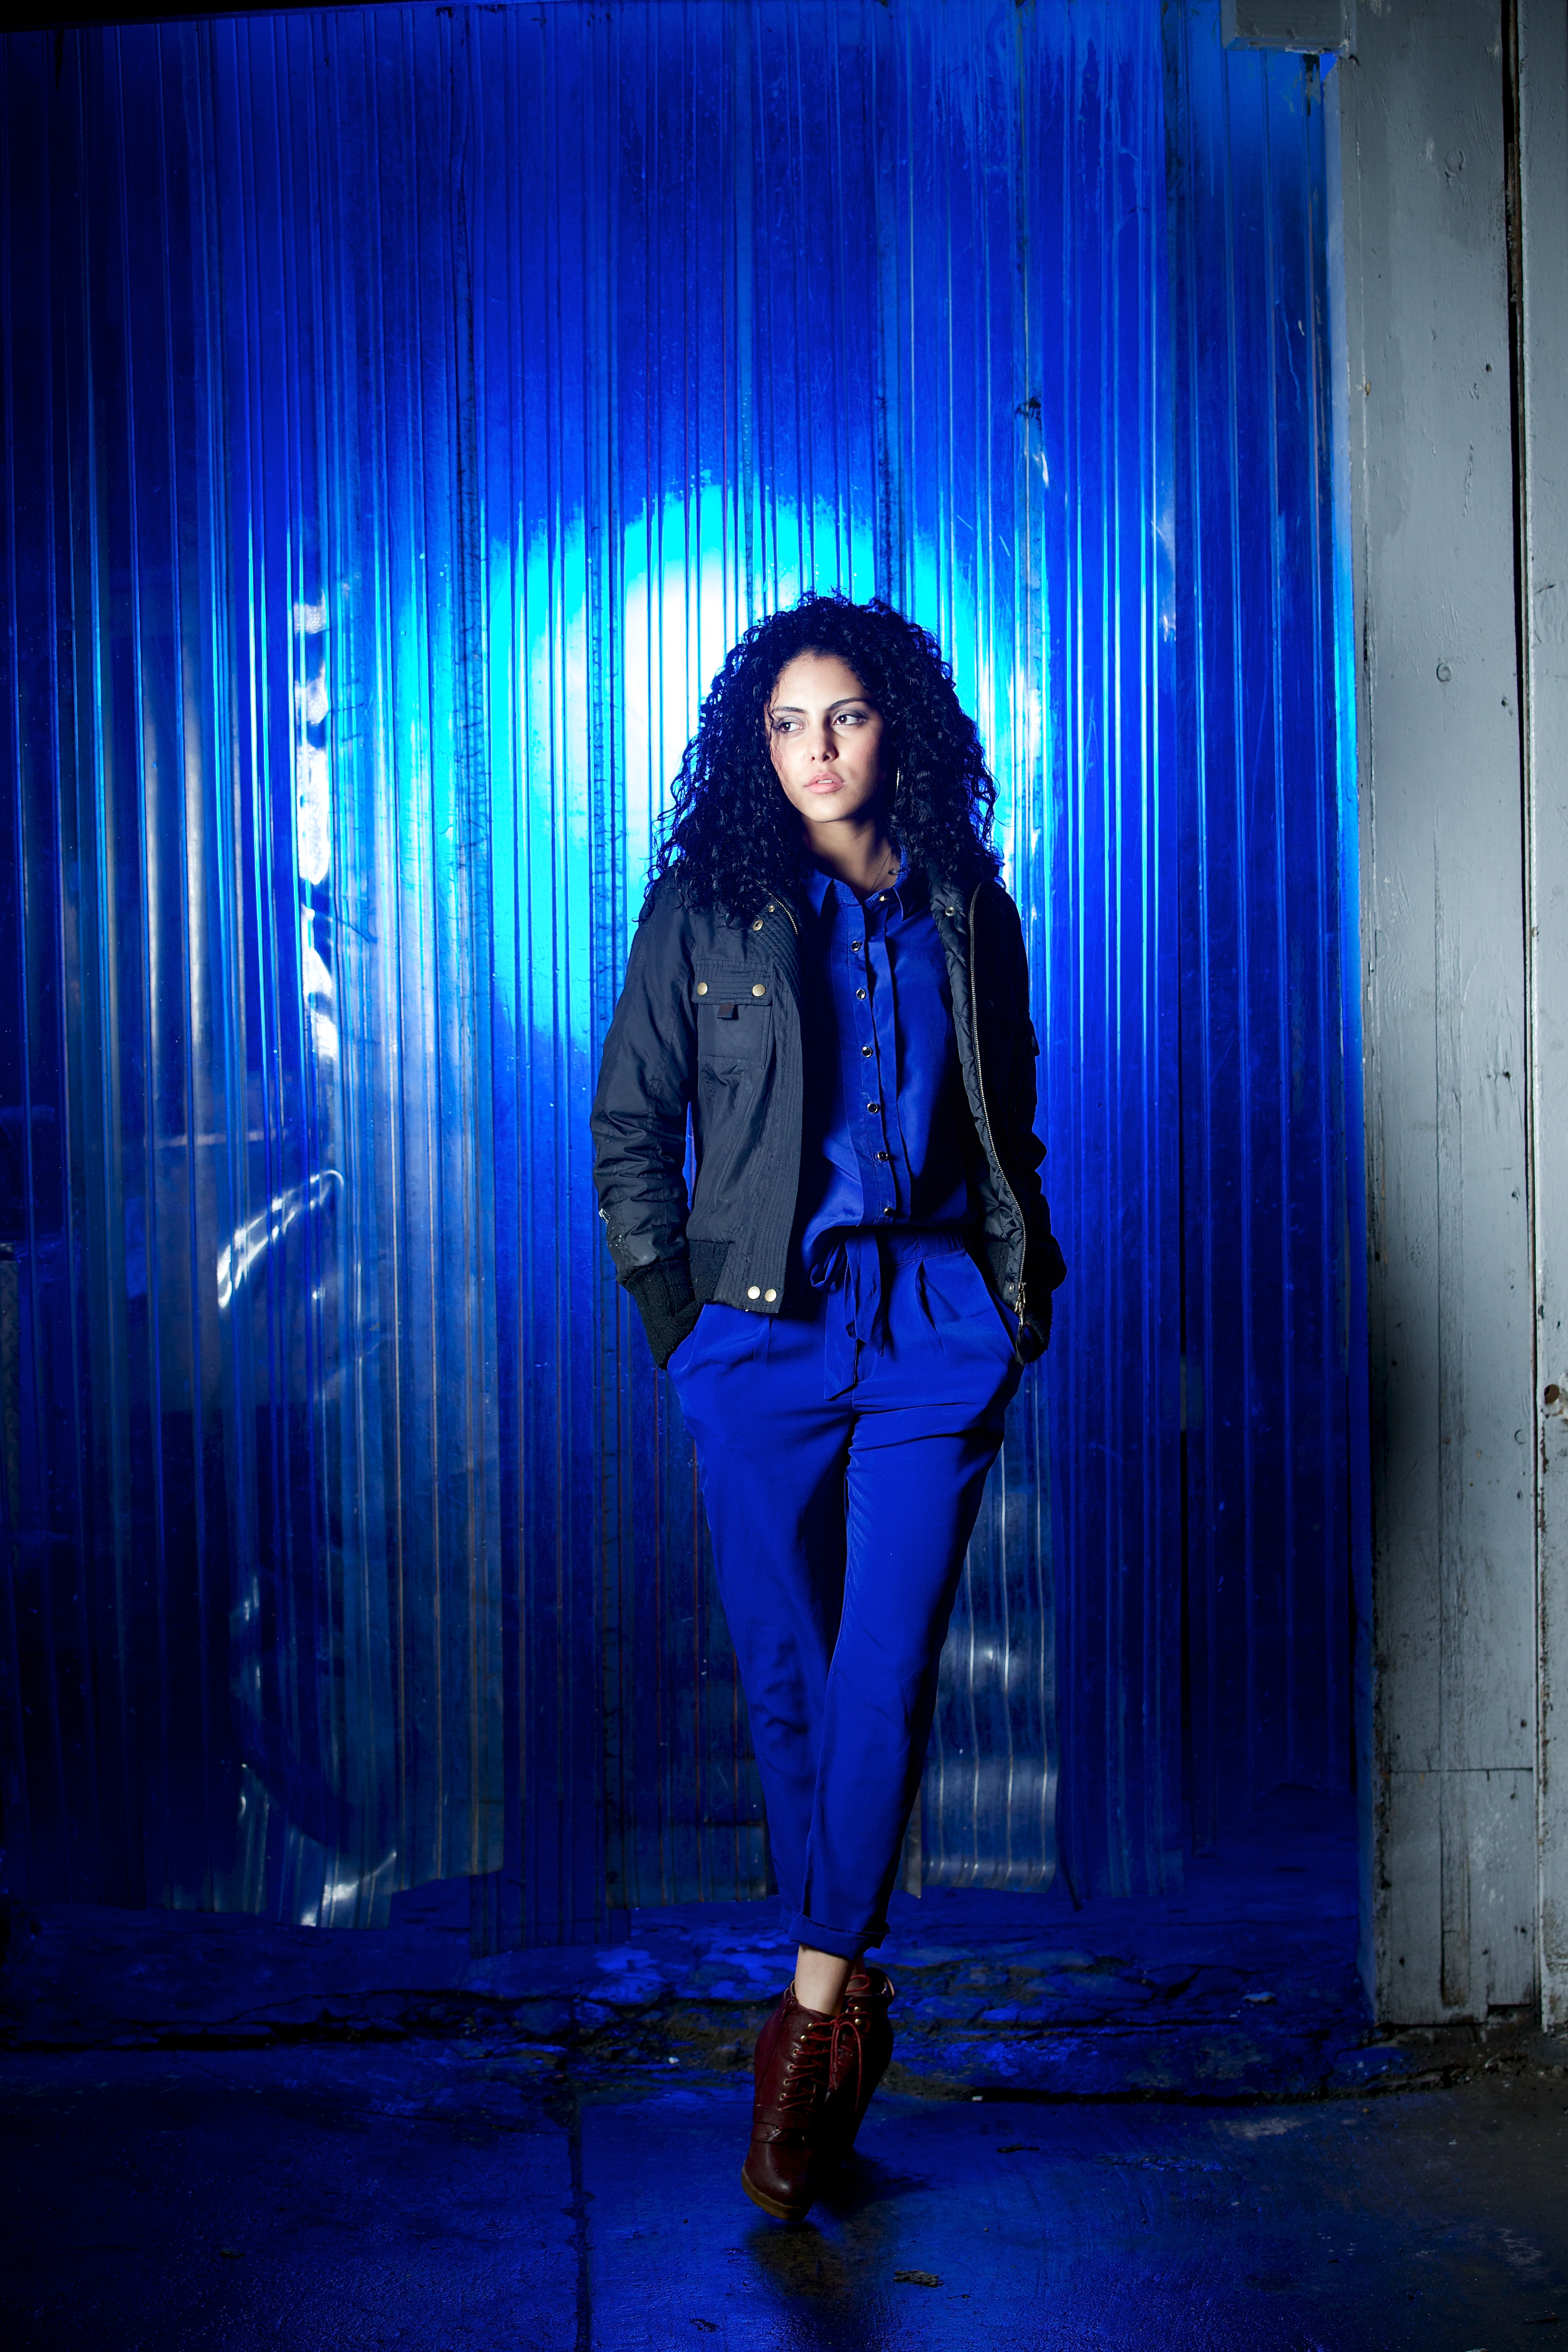 Model Portrait Using Westcott Perfect Pair Kit and Blue Gels #1